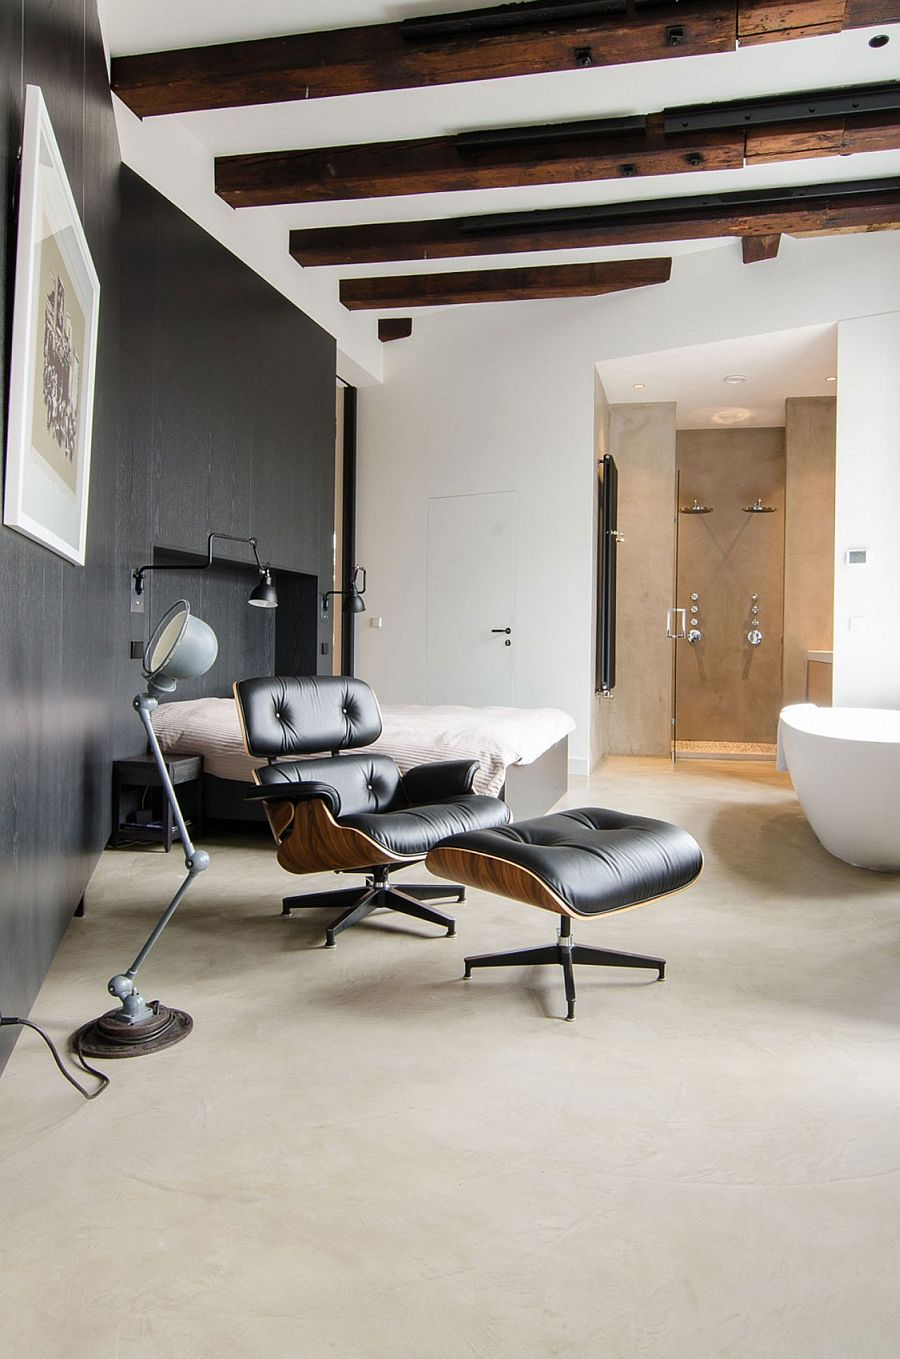 Master bedroom and bath with floor lamp and Eames Lounger